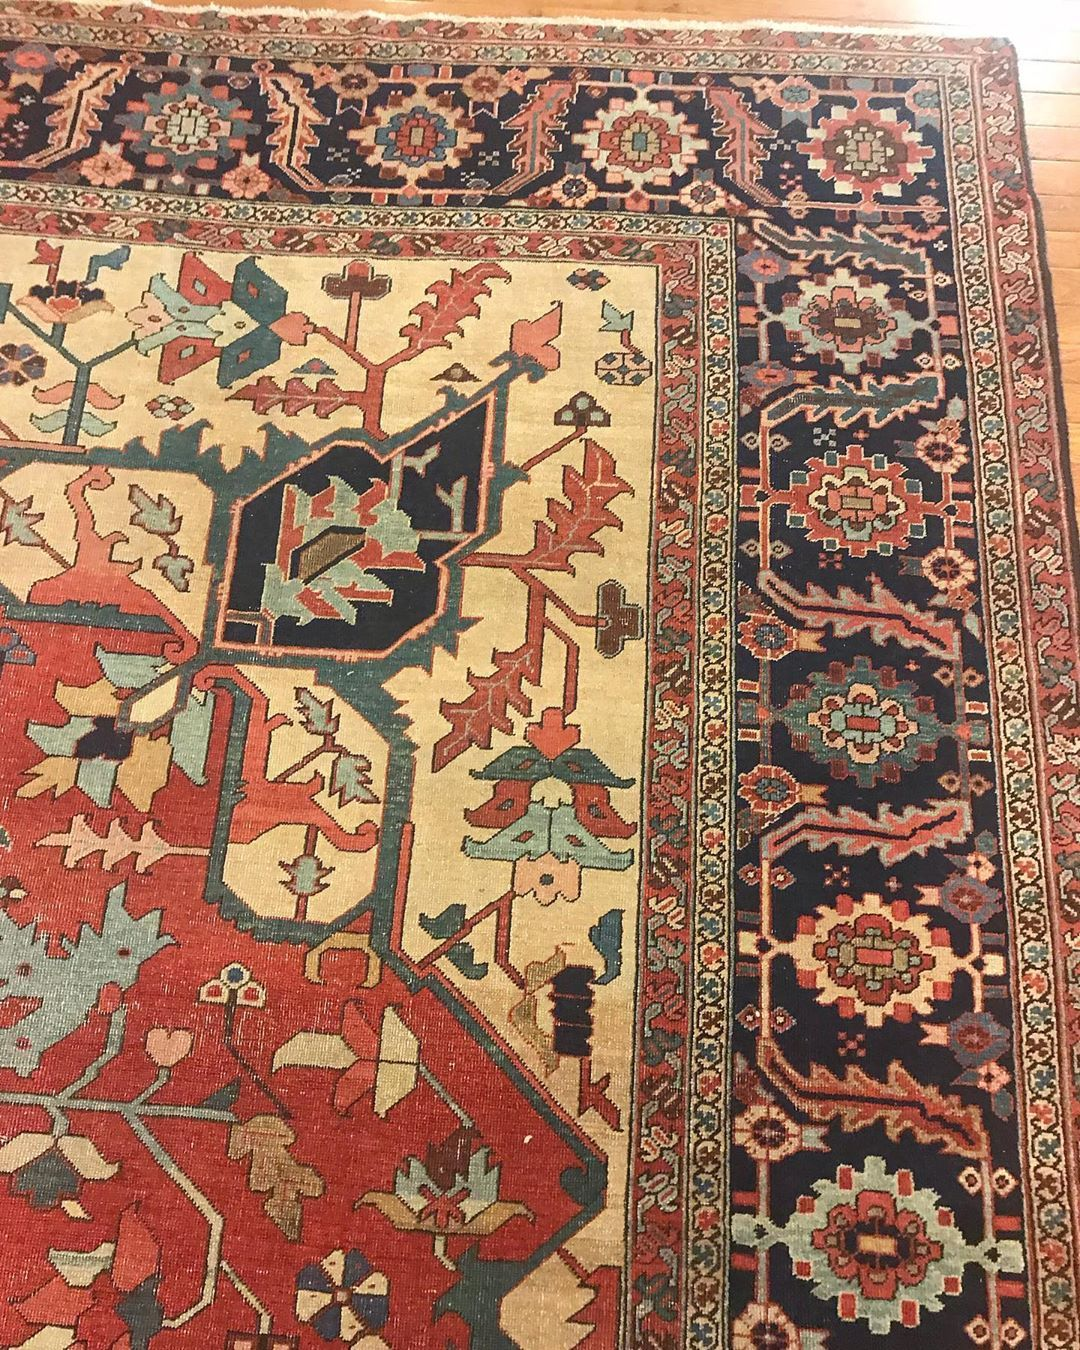 Nomads Loom Best Where Can I Sell My Oriental Rug Advisor In 2020 Afghan Rugs Rugs Rug Store